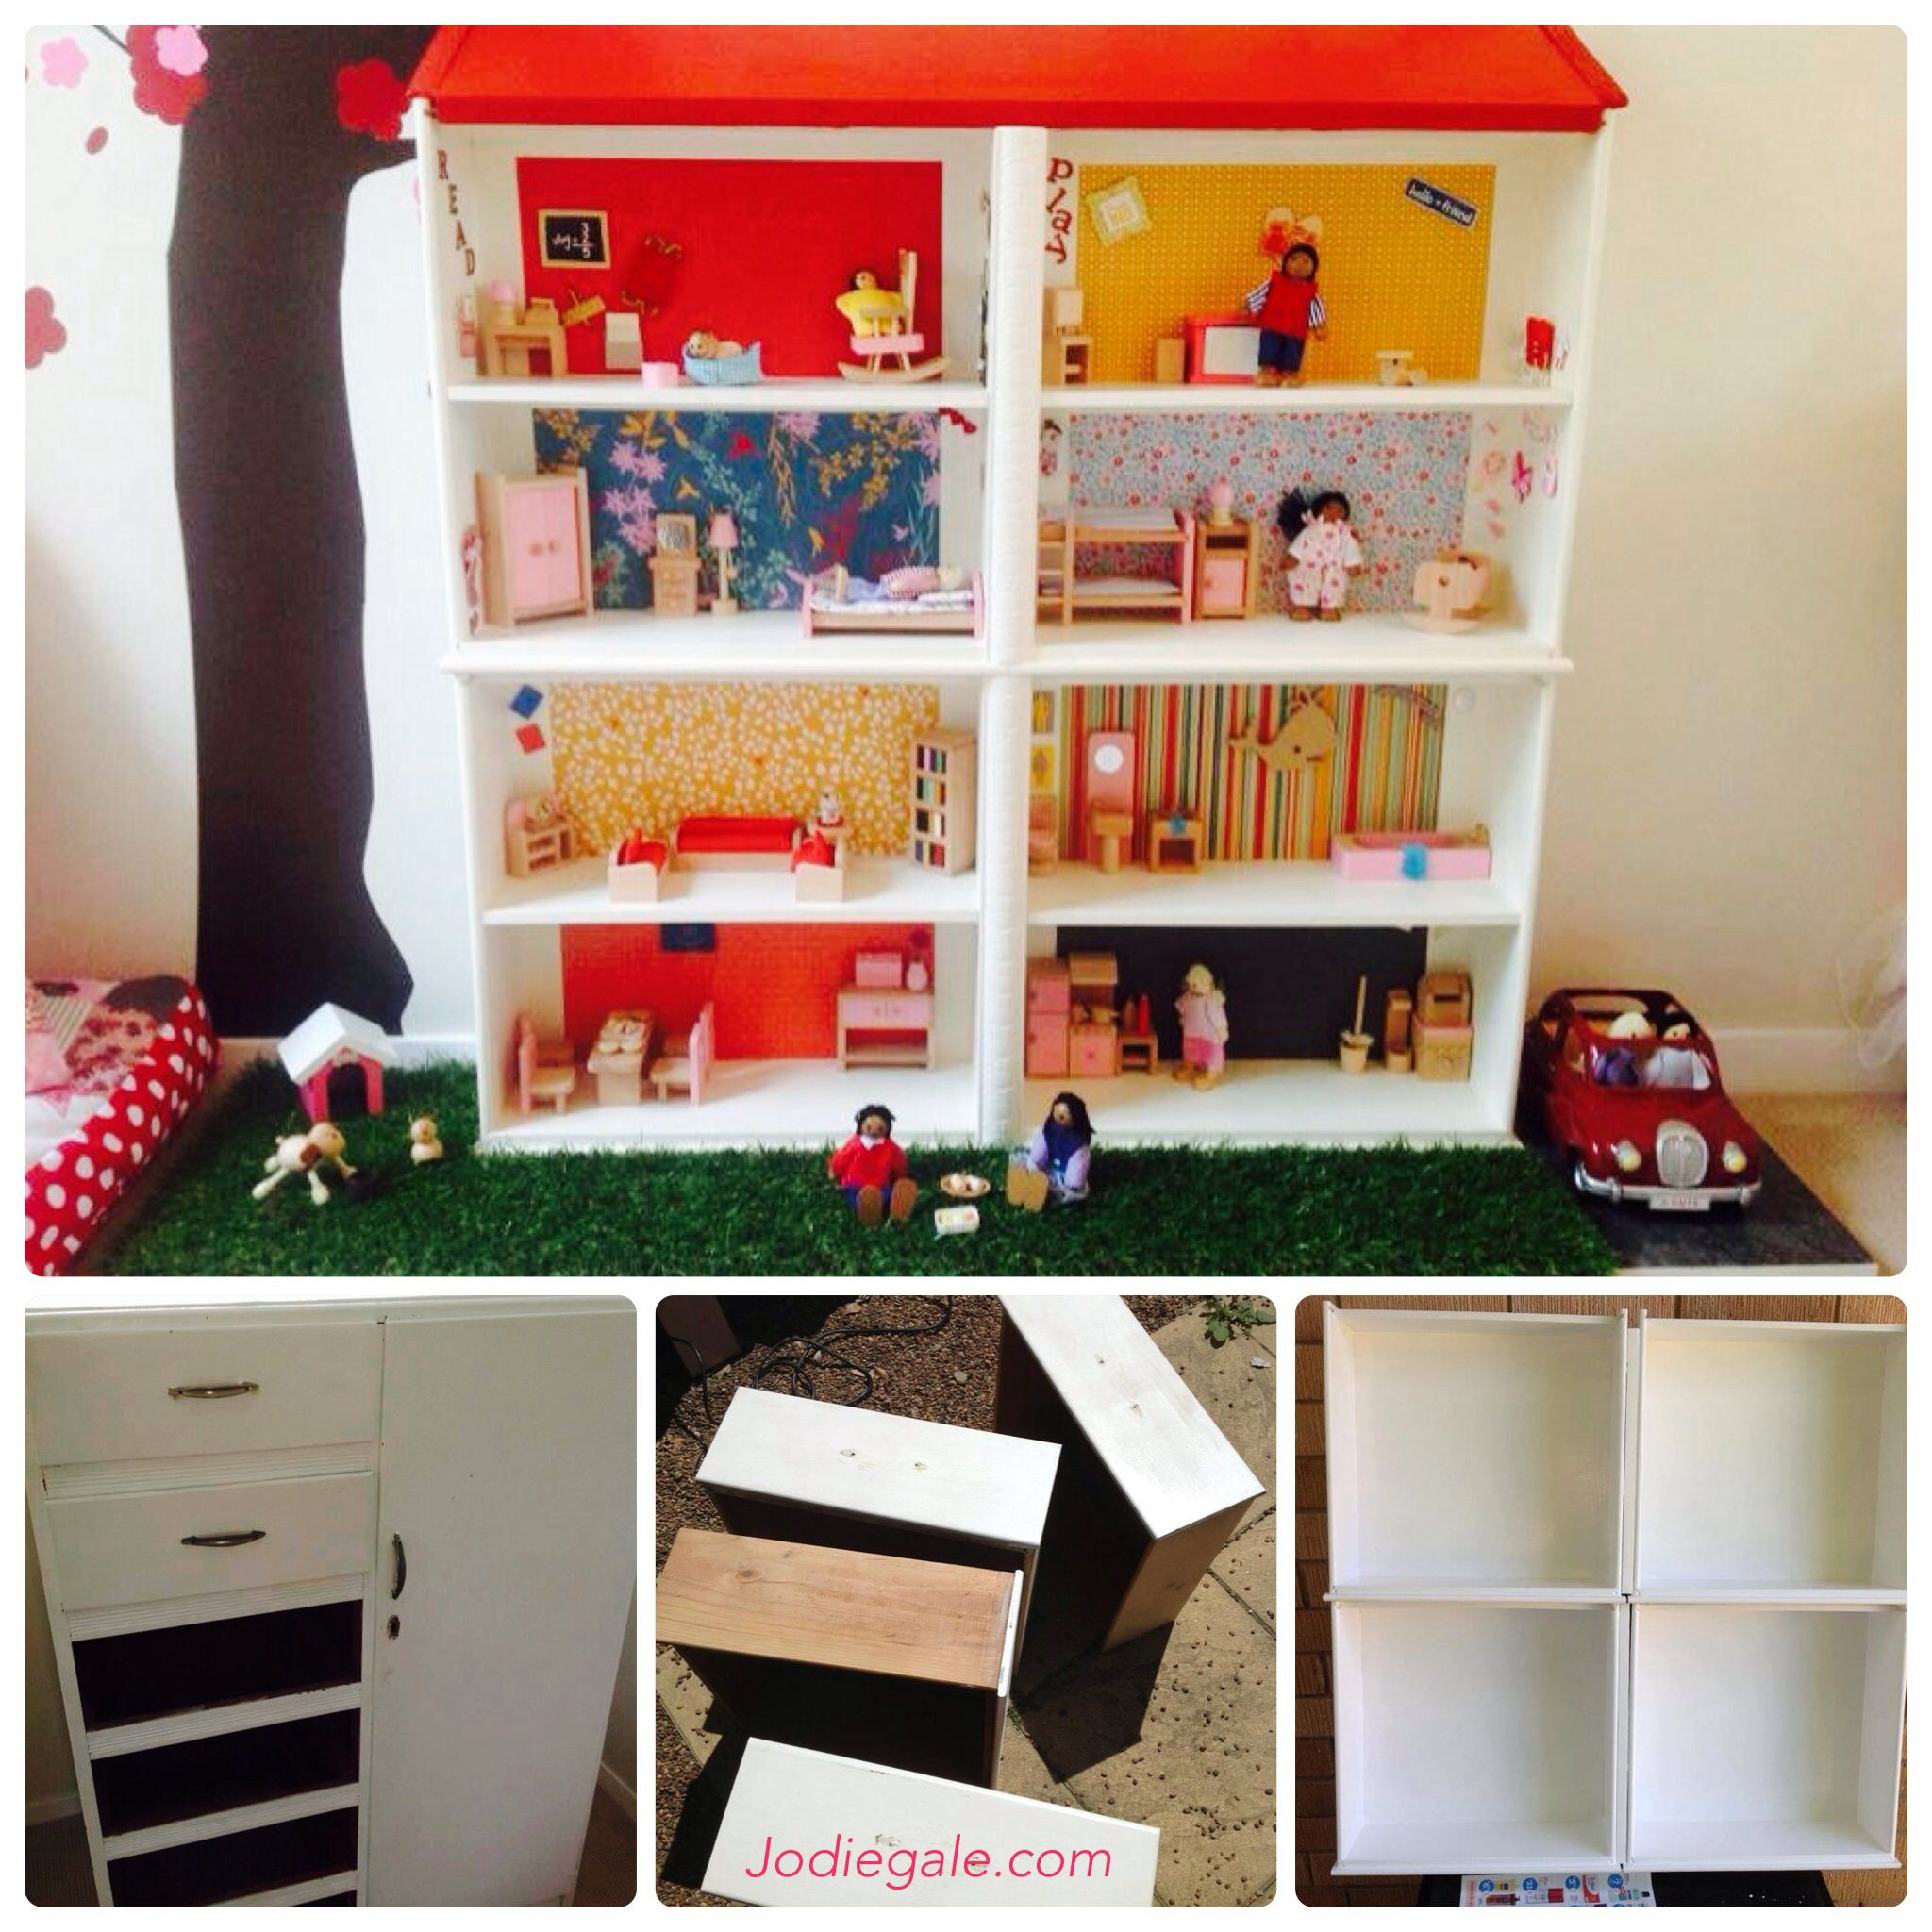 Reclaimed furniture upcycled draws into dolls house we made this dolls house out of 4 old